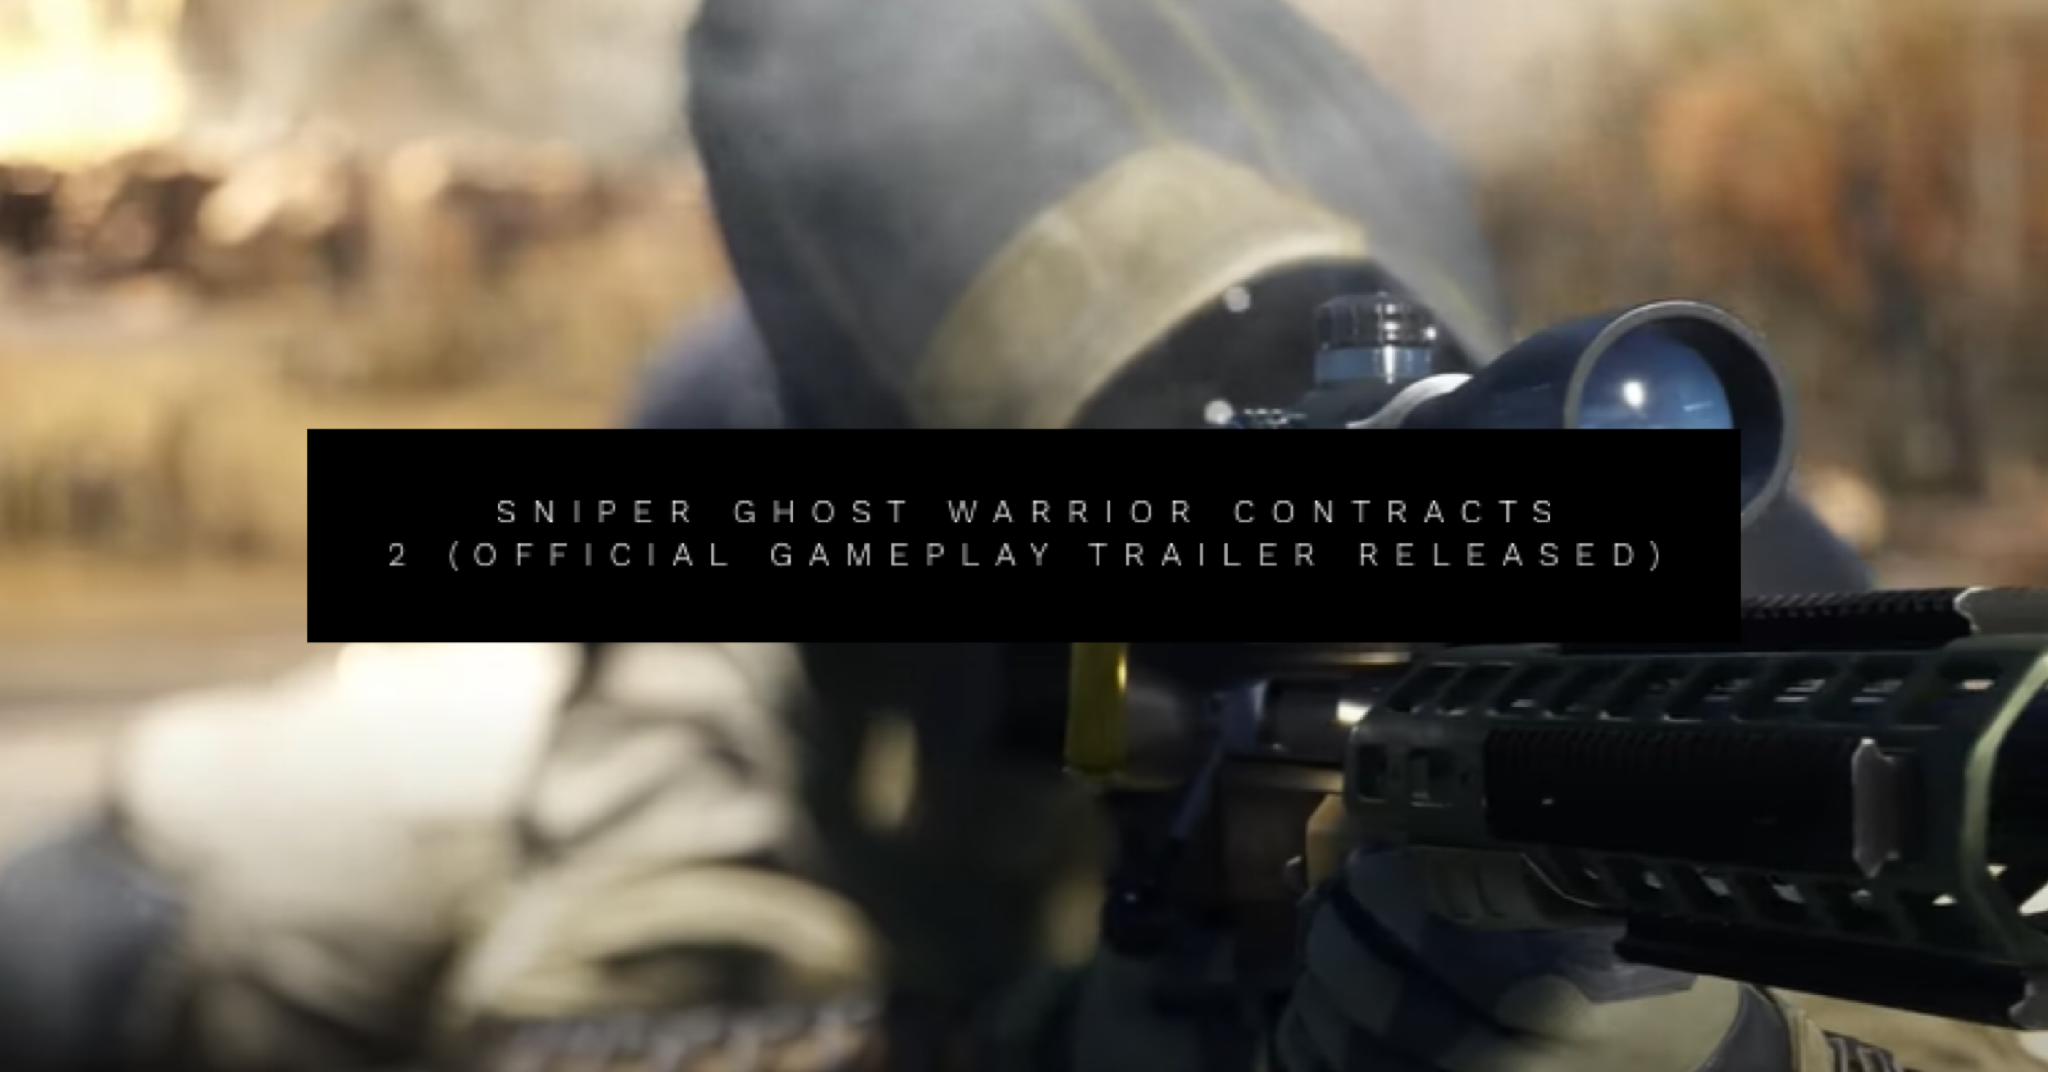 sniper ghost warrior contracts 2 official gameplay trailer